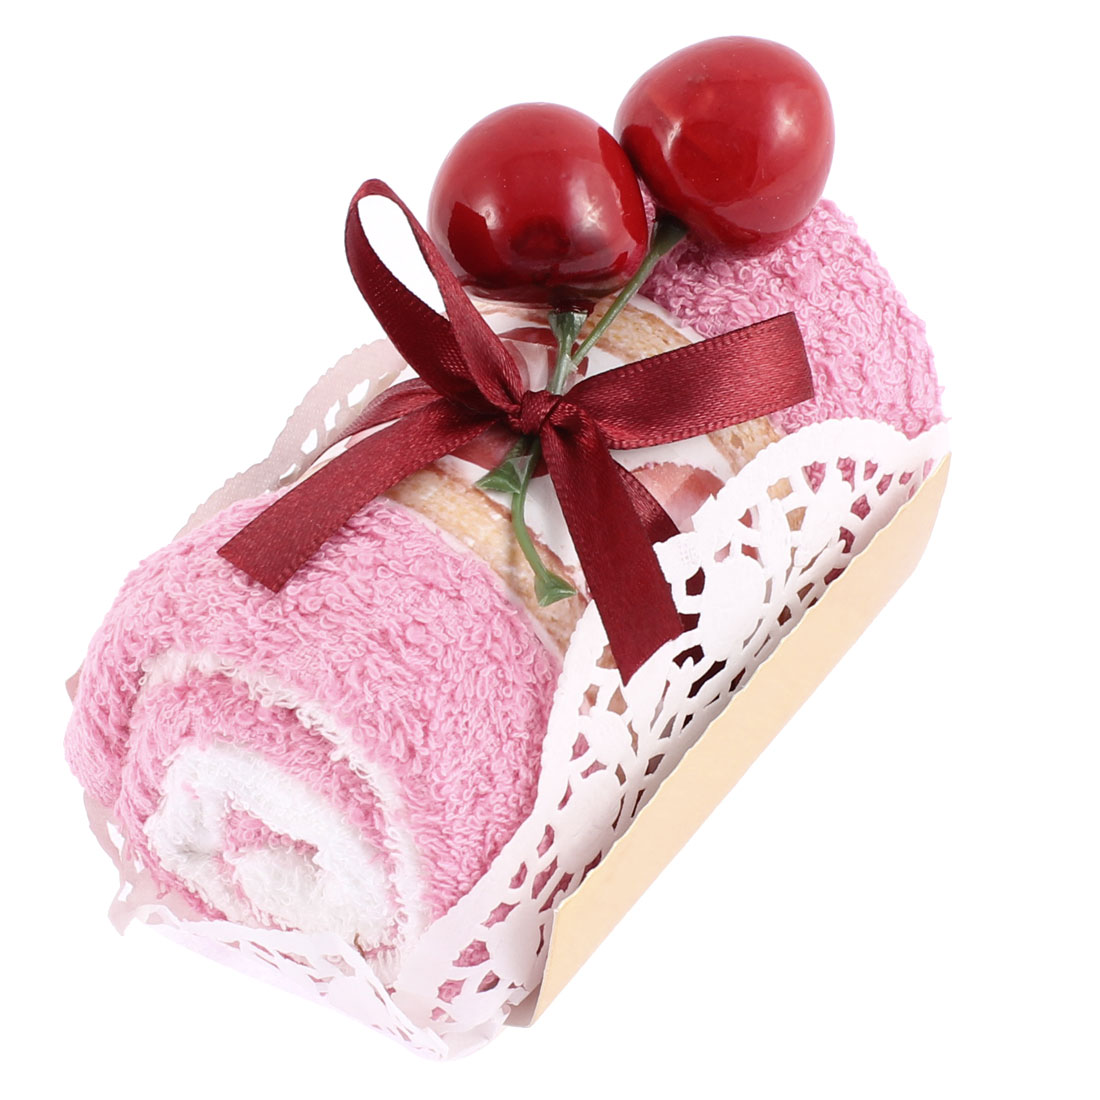 Roll Cake Design Cherry Decor Wedding Party Gift Washcloth Hand Towel Pink